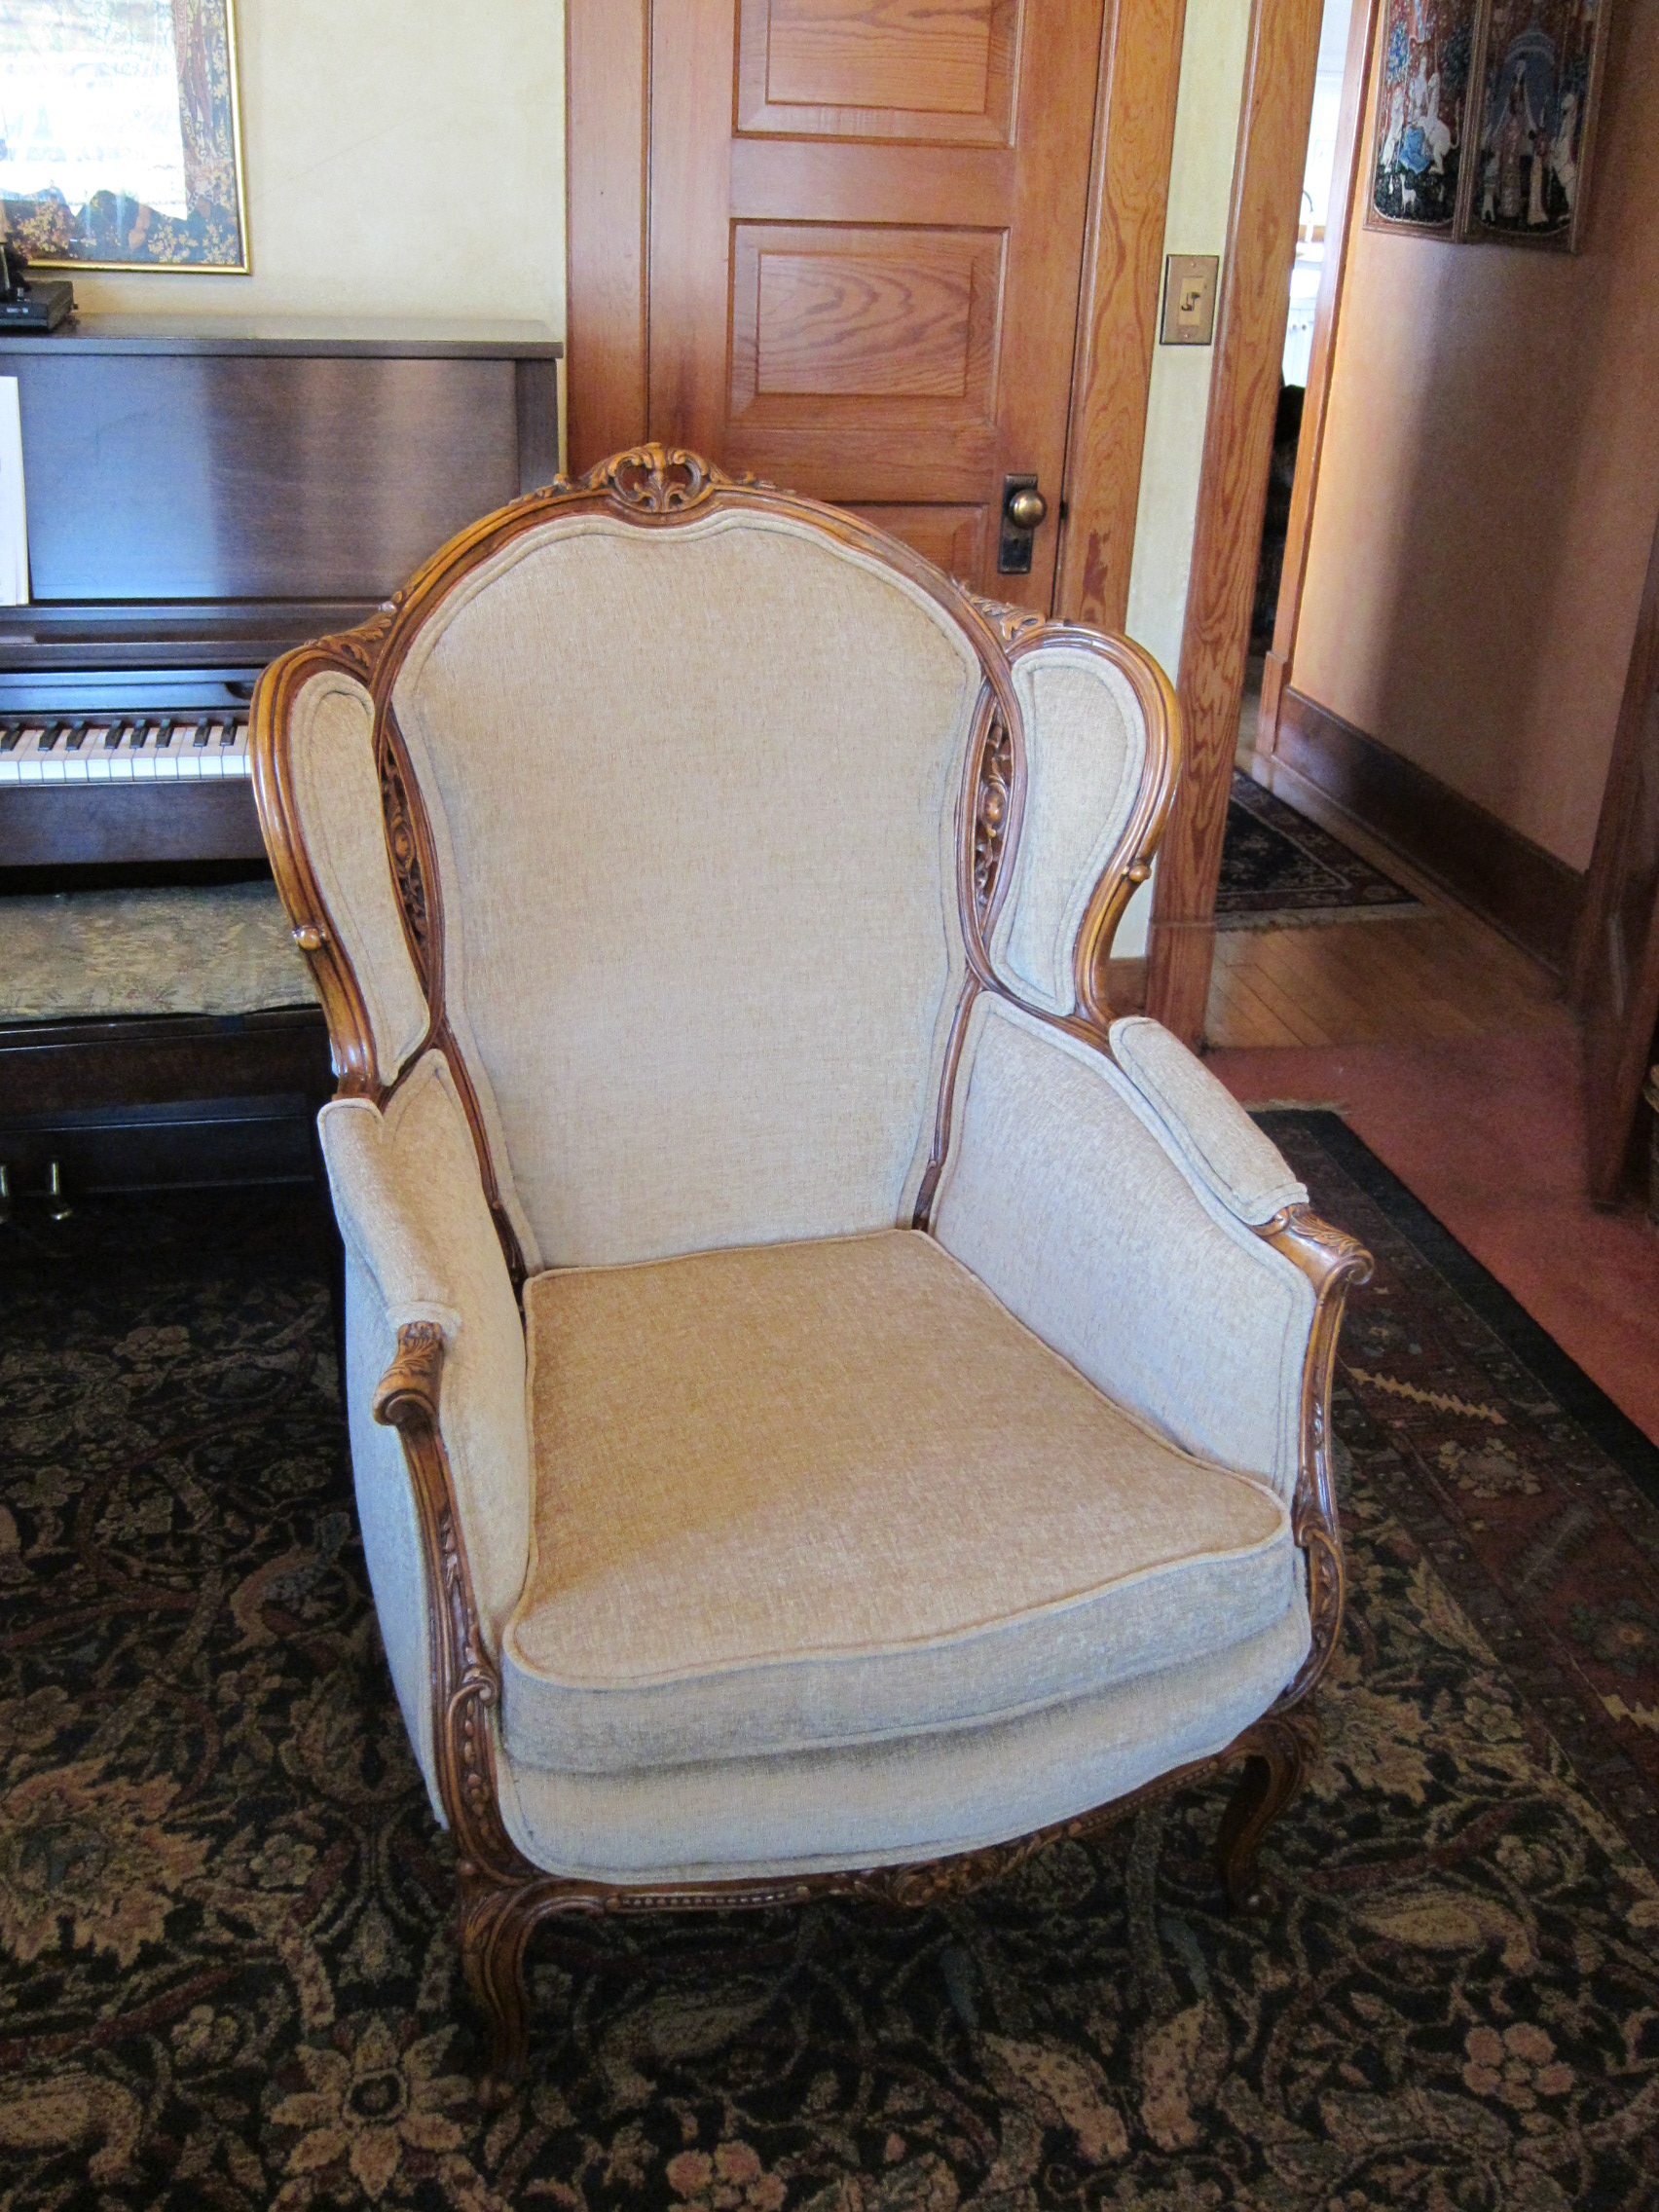 Due to allergies, this chair was torn down to the wood frame and rebuilt with new horsehair, materials and fabric